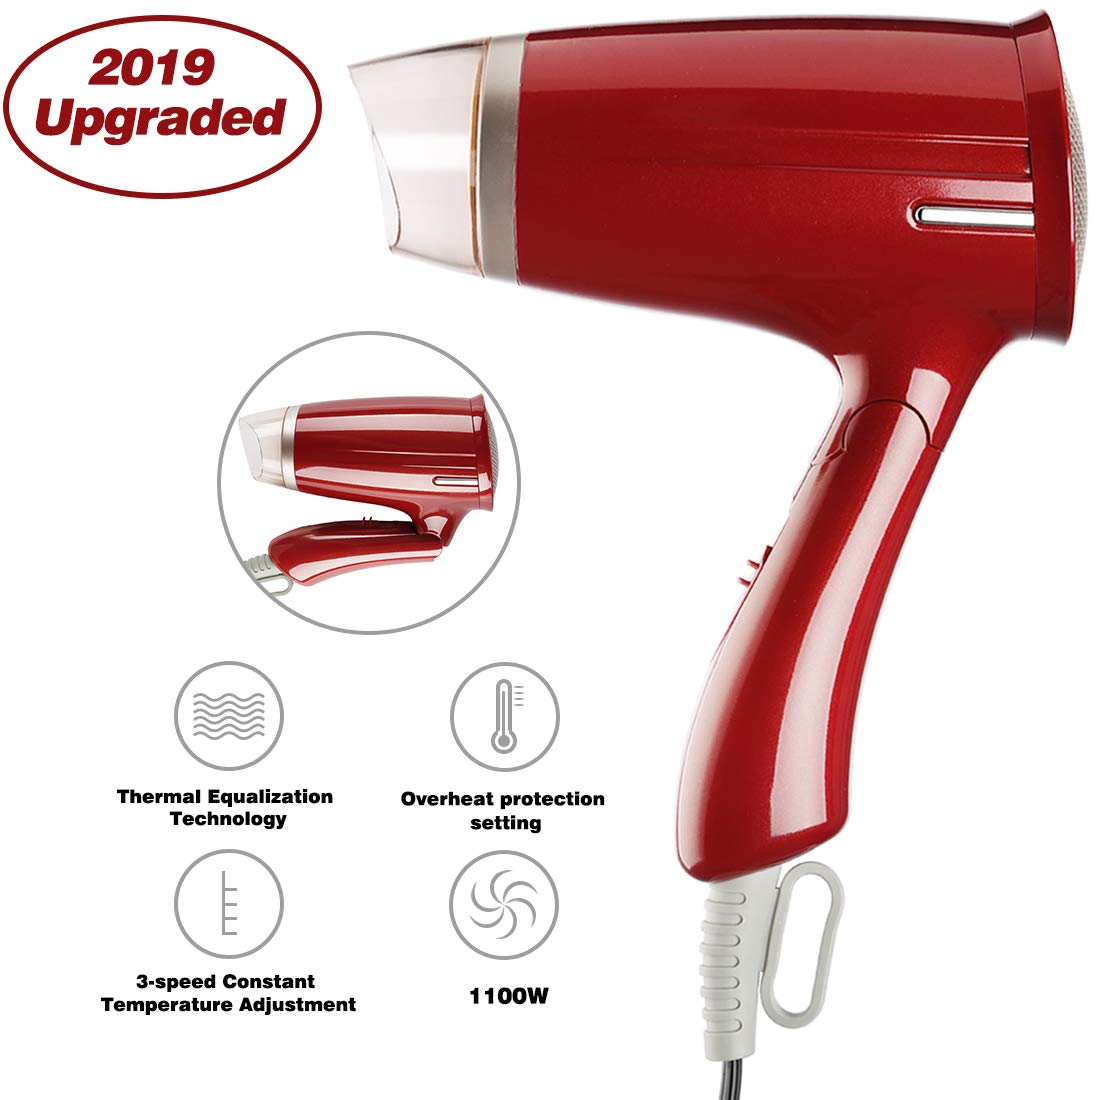 Compact Hair Dryer with Folding Handle, Travel Hair Dryer,Professional Salon Hair Dryer Negative Ionic Folding Blow Dryer 3 Settings Burgundy